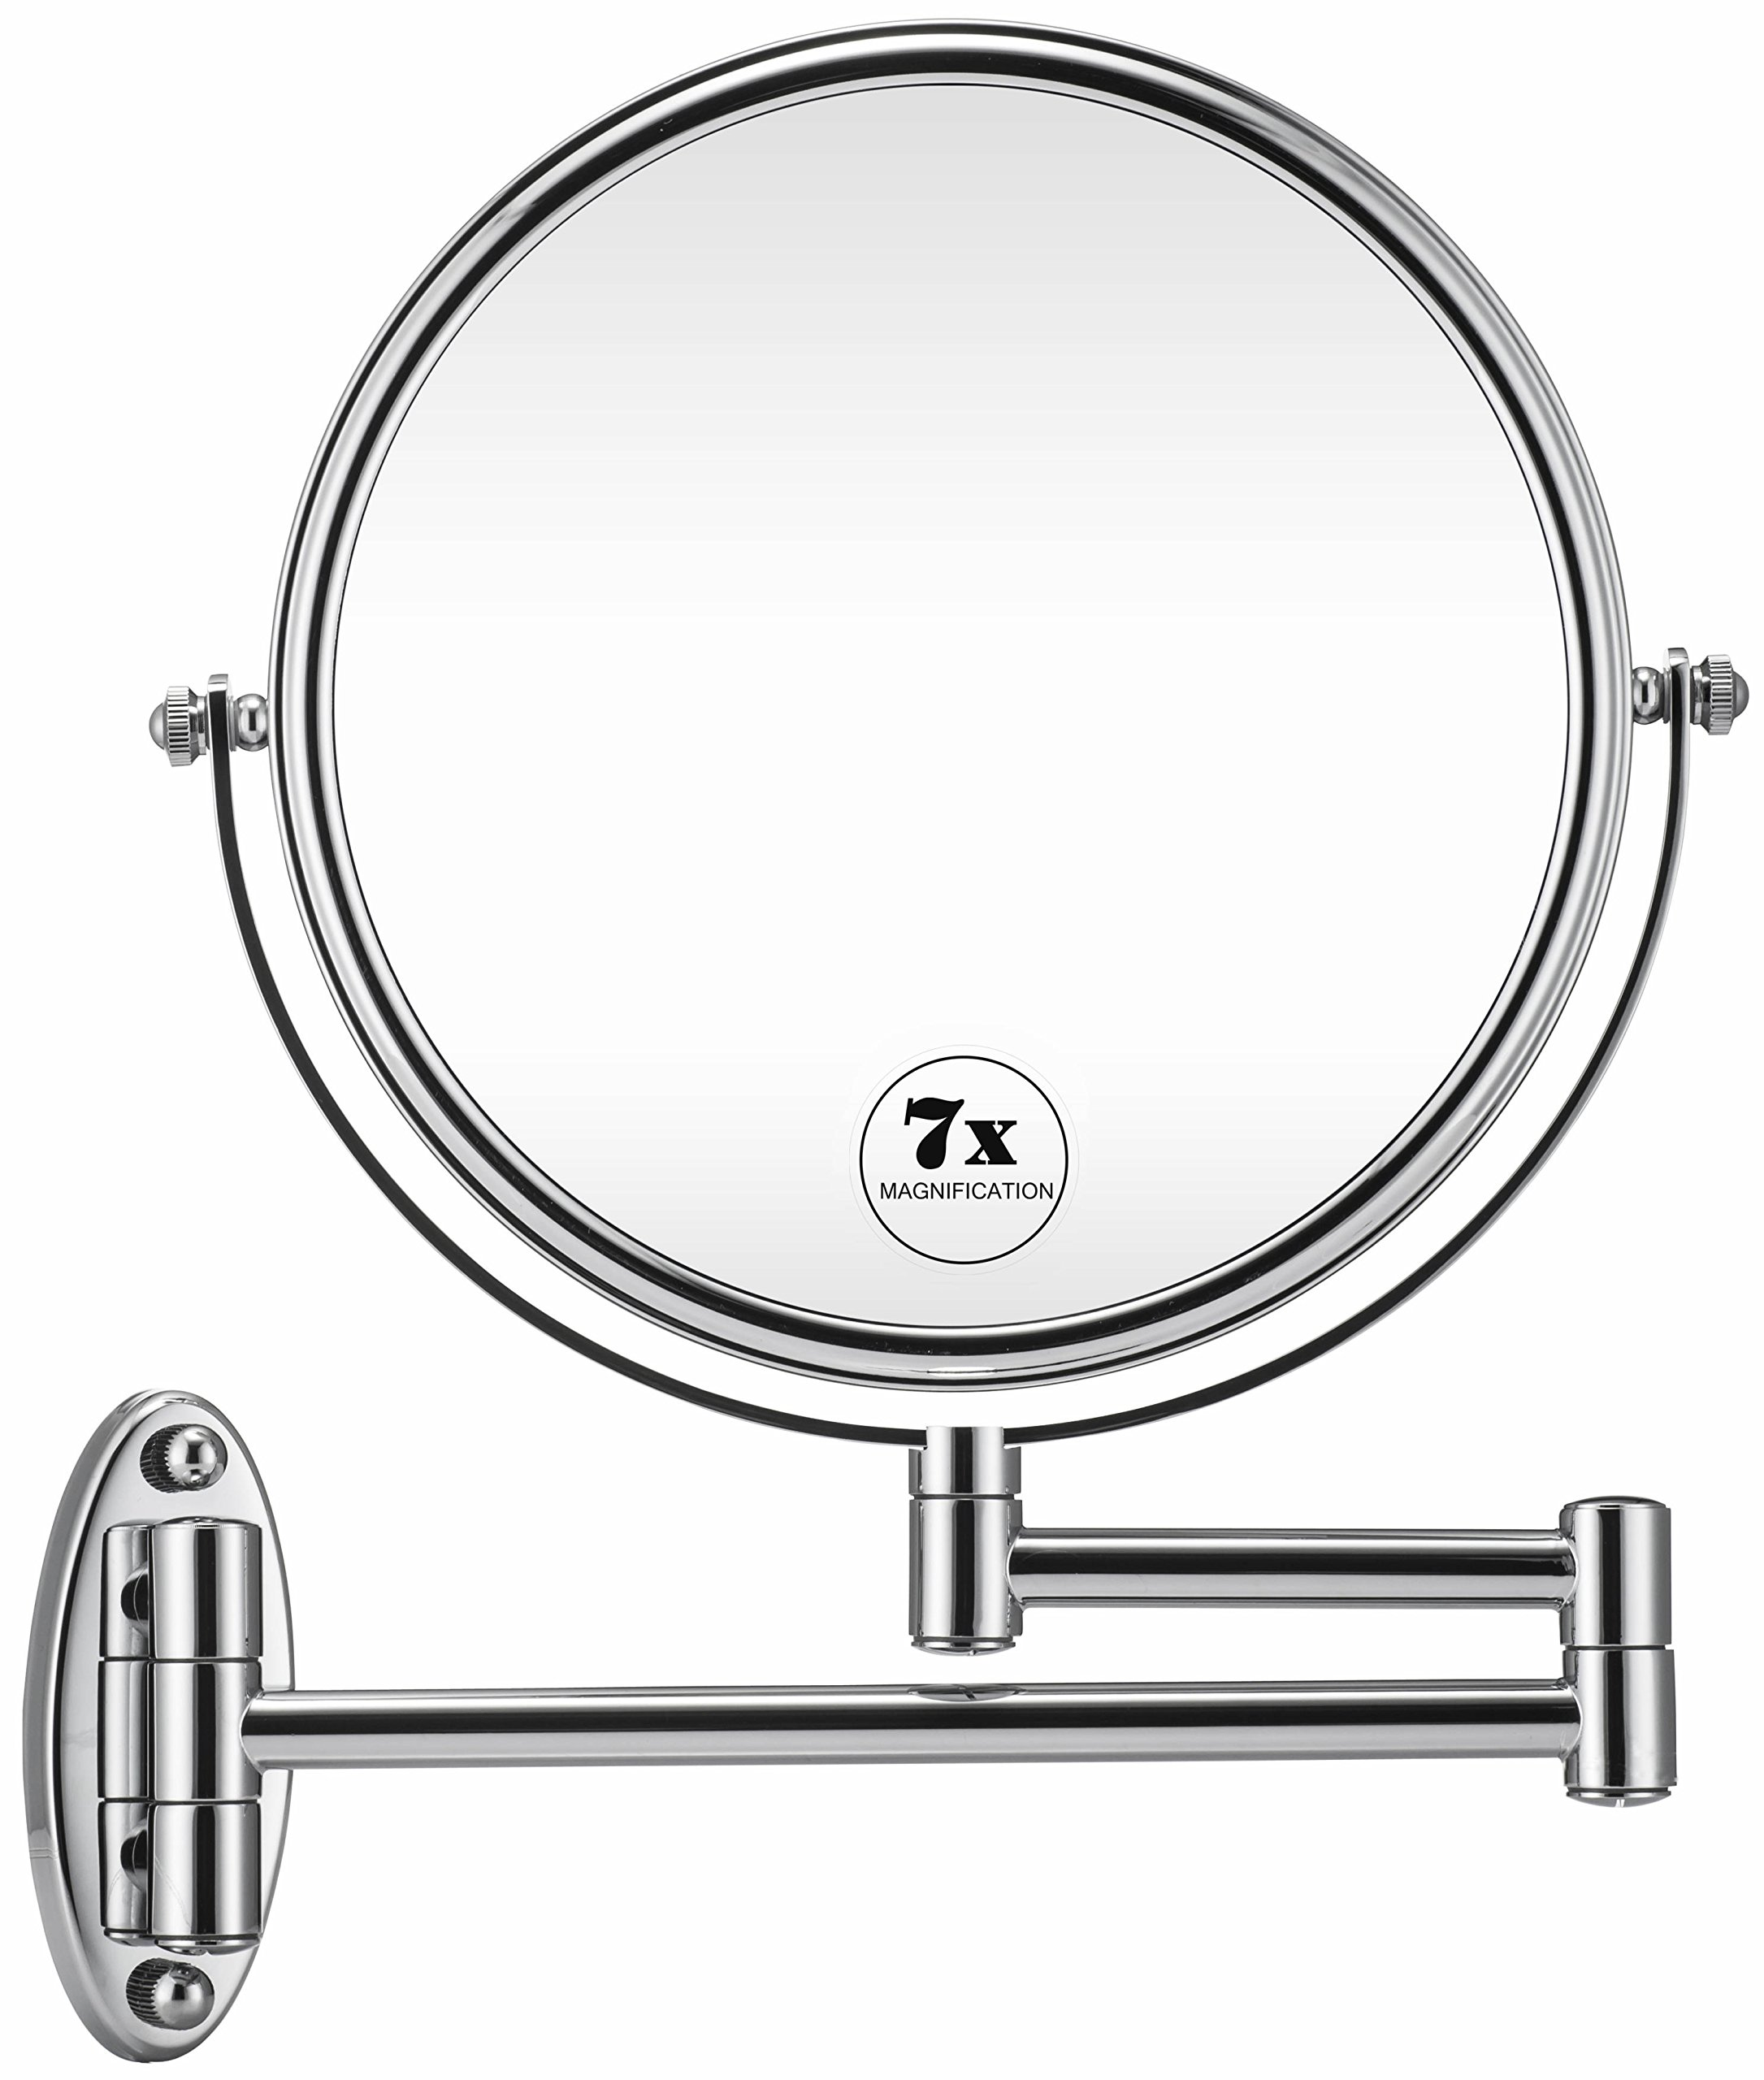 GloRiastar 7X Wall Mounted Makeup Mirror - Double Sided Magnifying Makeup Mirror for Bathroom, 8 Inch Extension Polished Chrome Finished Mirror